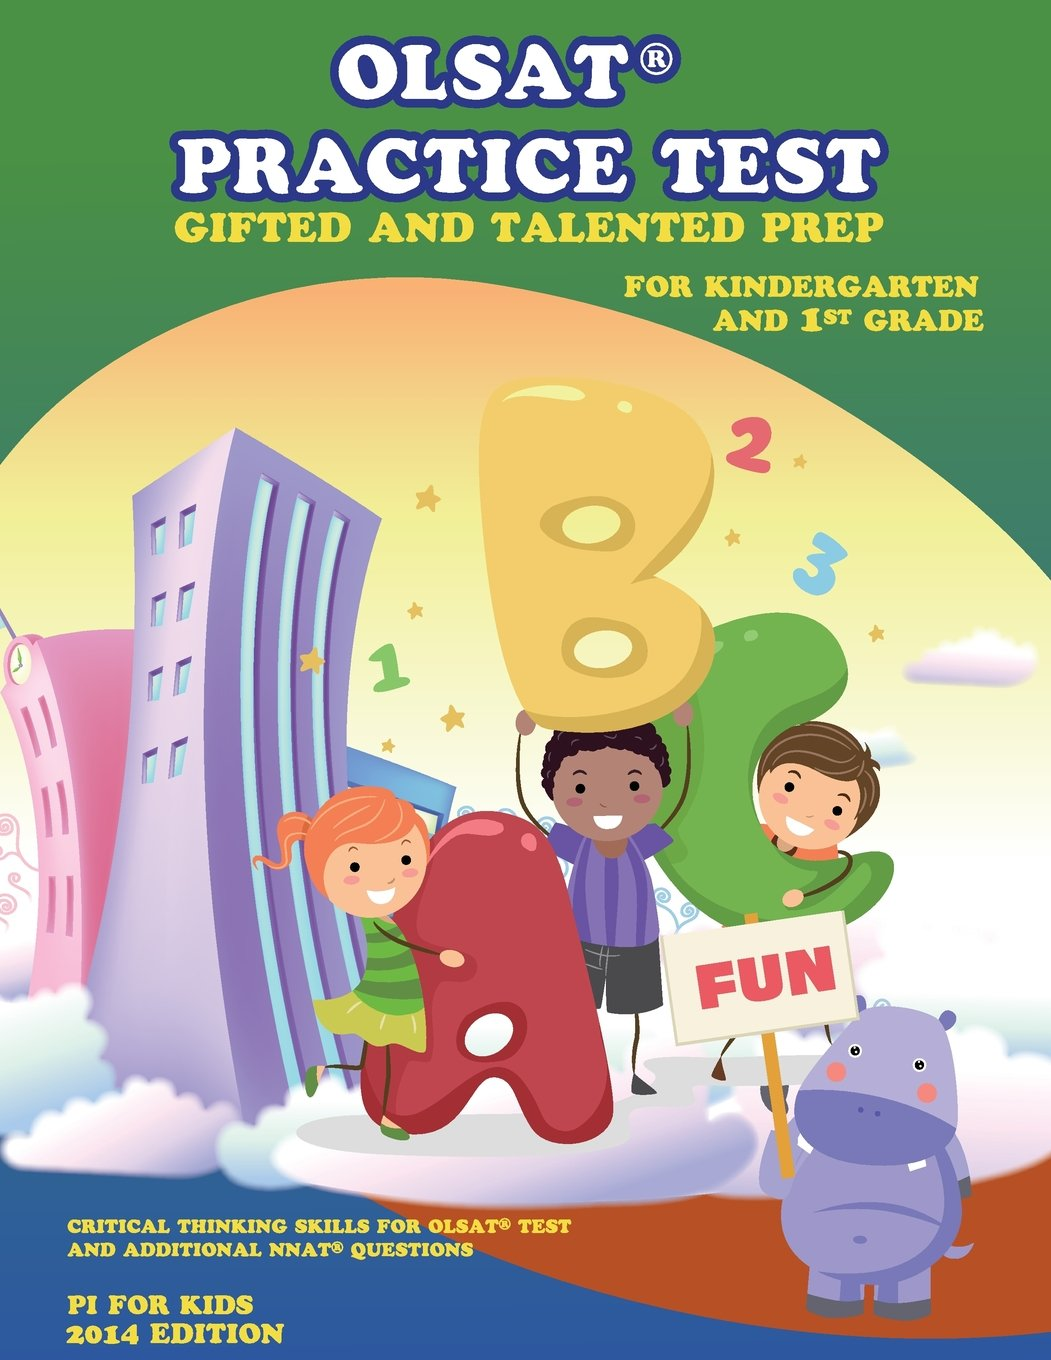 OLSAT® PRACTICE TEST Gifted and Talented Prep for Kindergarten and 1st Grade: Gifted and Talented Prep (Gifted and Talented Practice Test) (Volume 2) ...